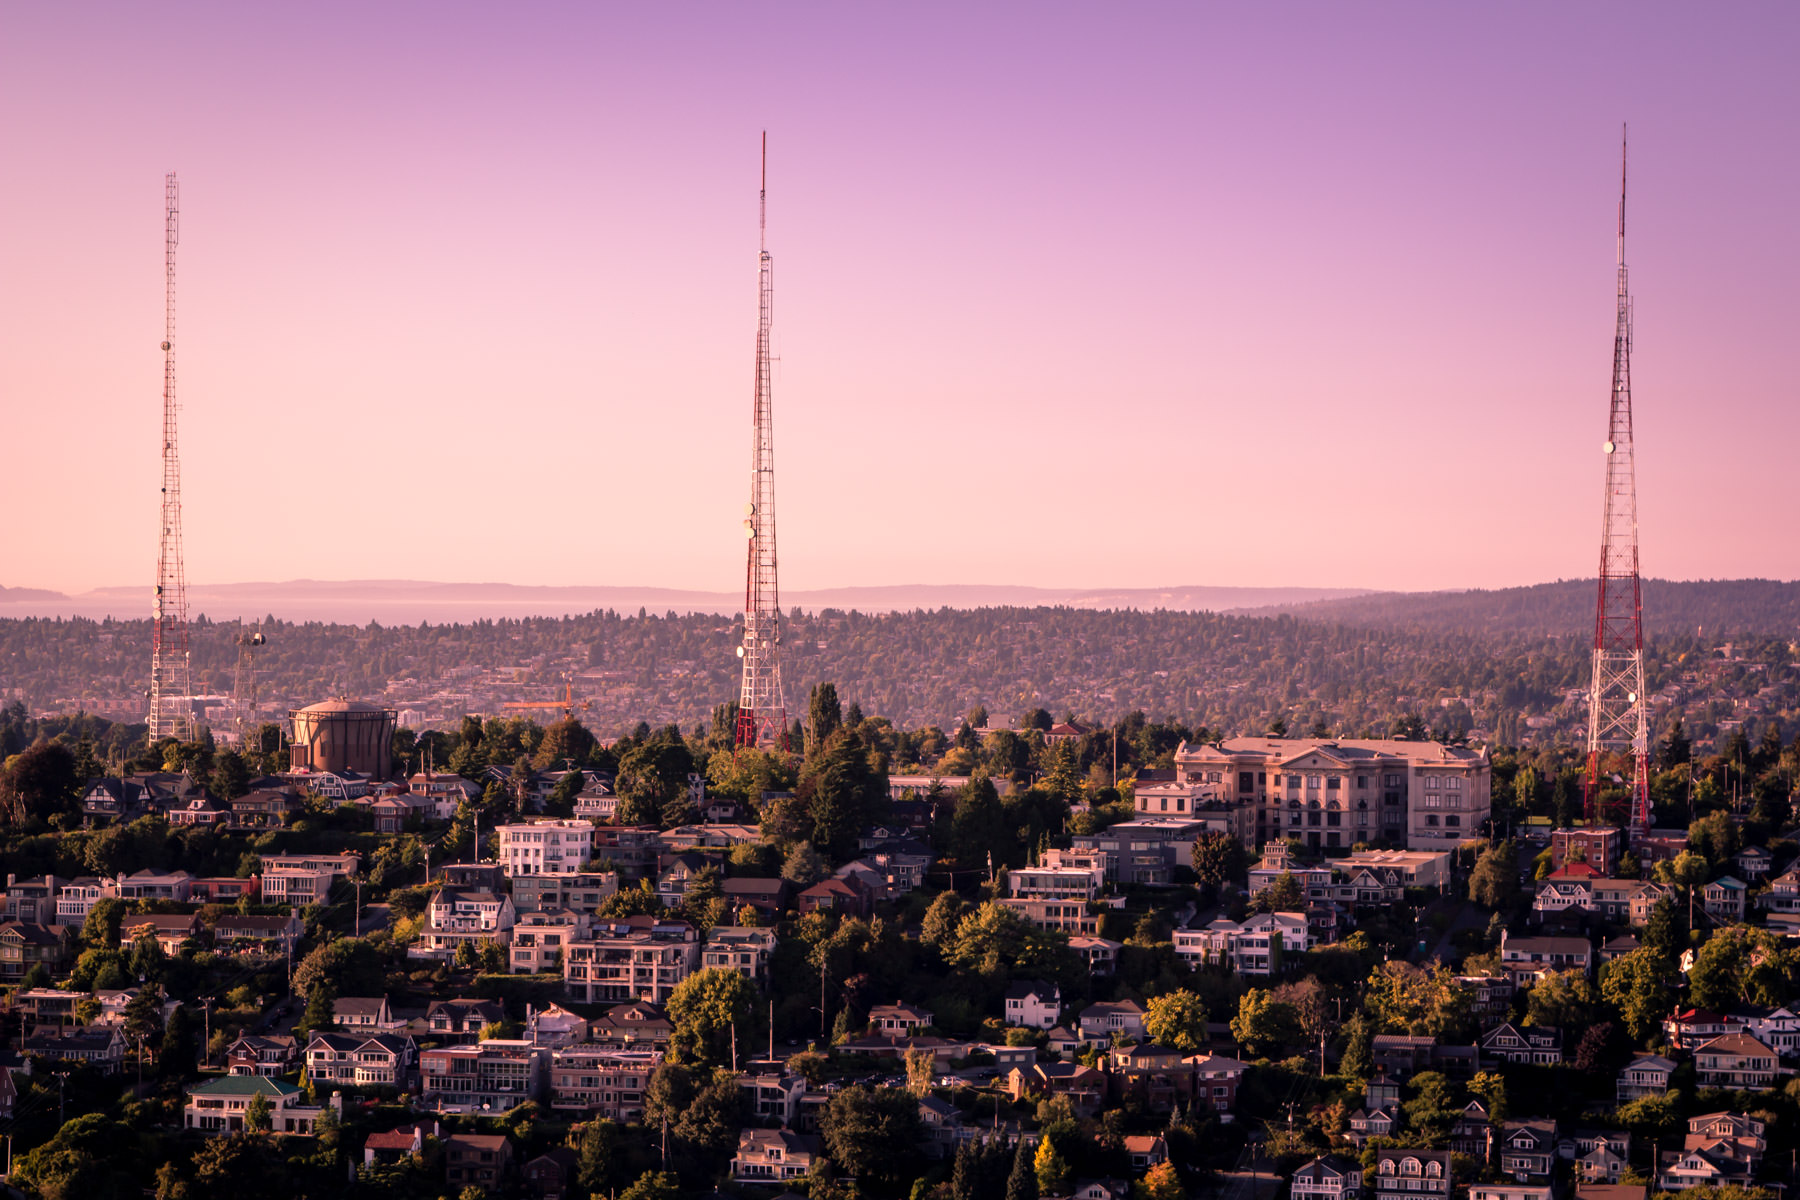 Three broadcast towers rise into the sky as the sun sets on Seattle's Queen Anne neighborhood.